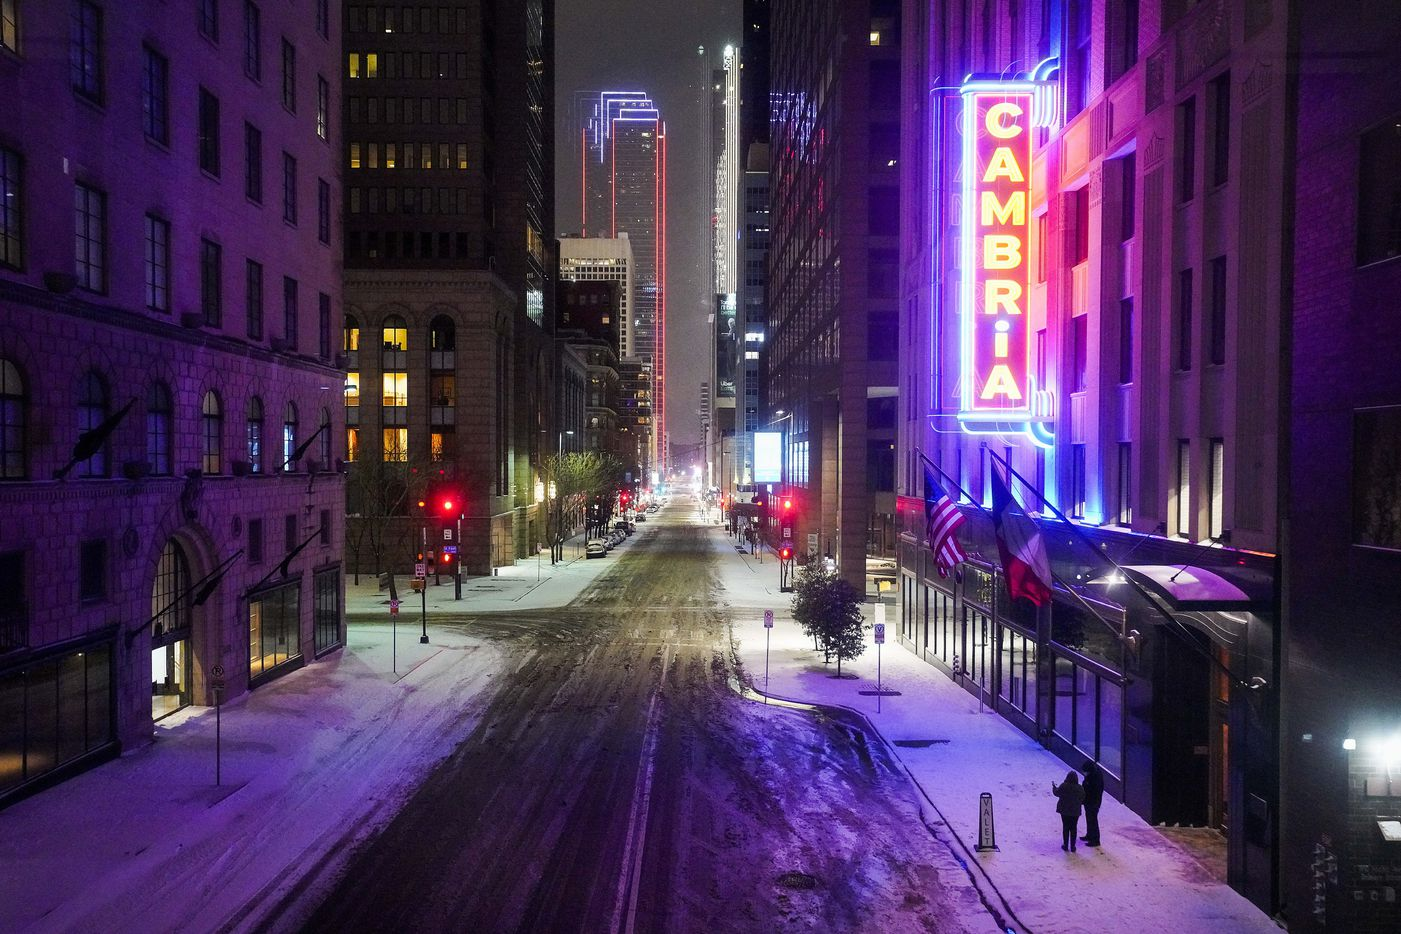 Elm Street is quiet in front of the Cambria Hotel as a winter storm brings snow and freezing temperatures to North Texas on Sunday, Feb. 14, 2021, in Dallas.  Sleet and light snow have arrived in North Texas early Sunday ahead of what is expected to be one of the worst winter storms in recent memory.